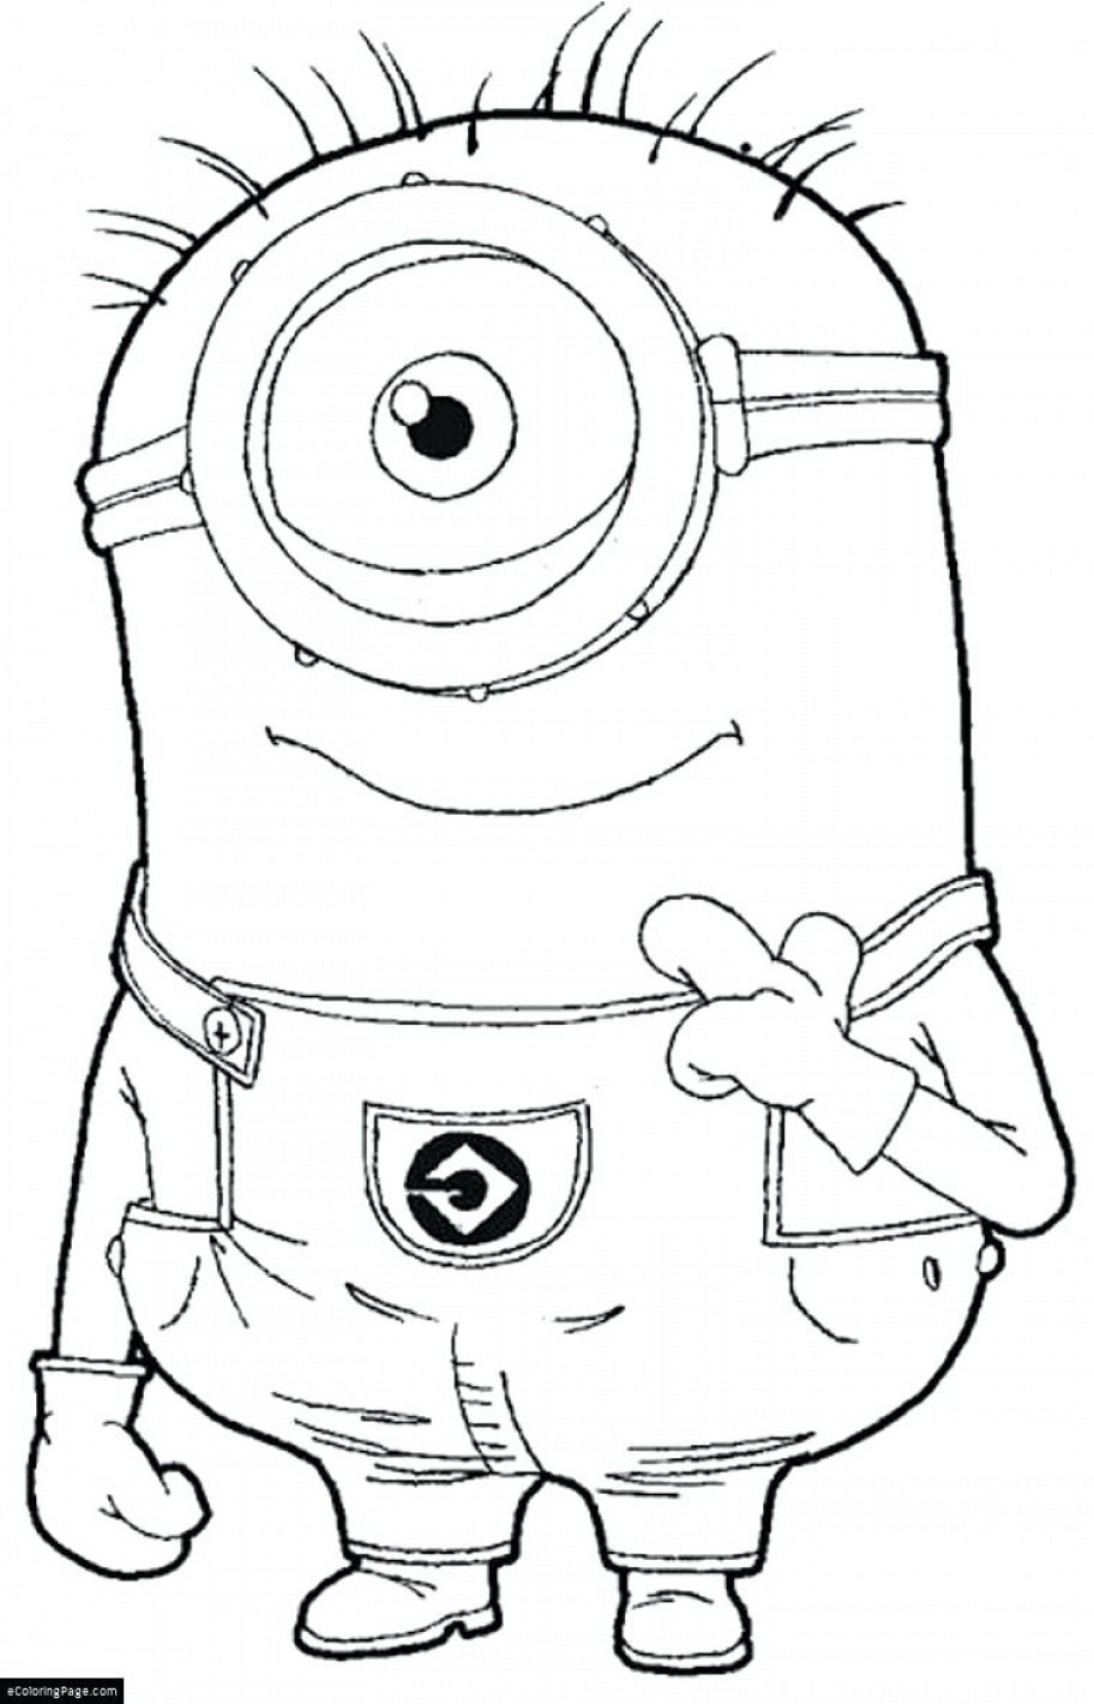 Despicable Me Vector Piranha: Despicable Me Coloring Pages One Eye Minion Page For Vector